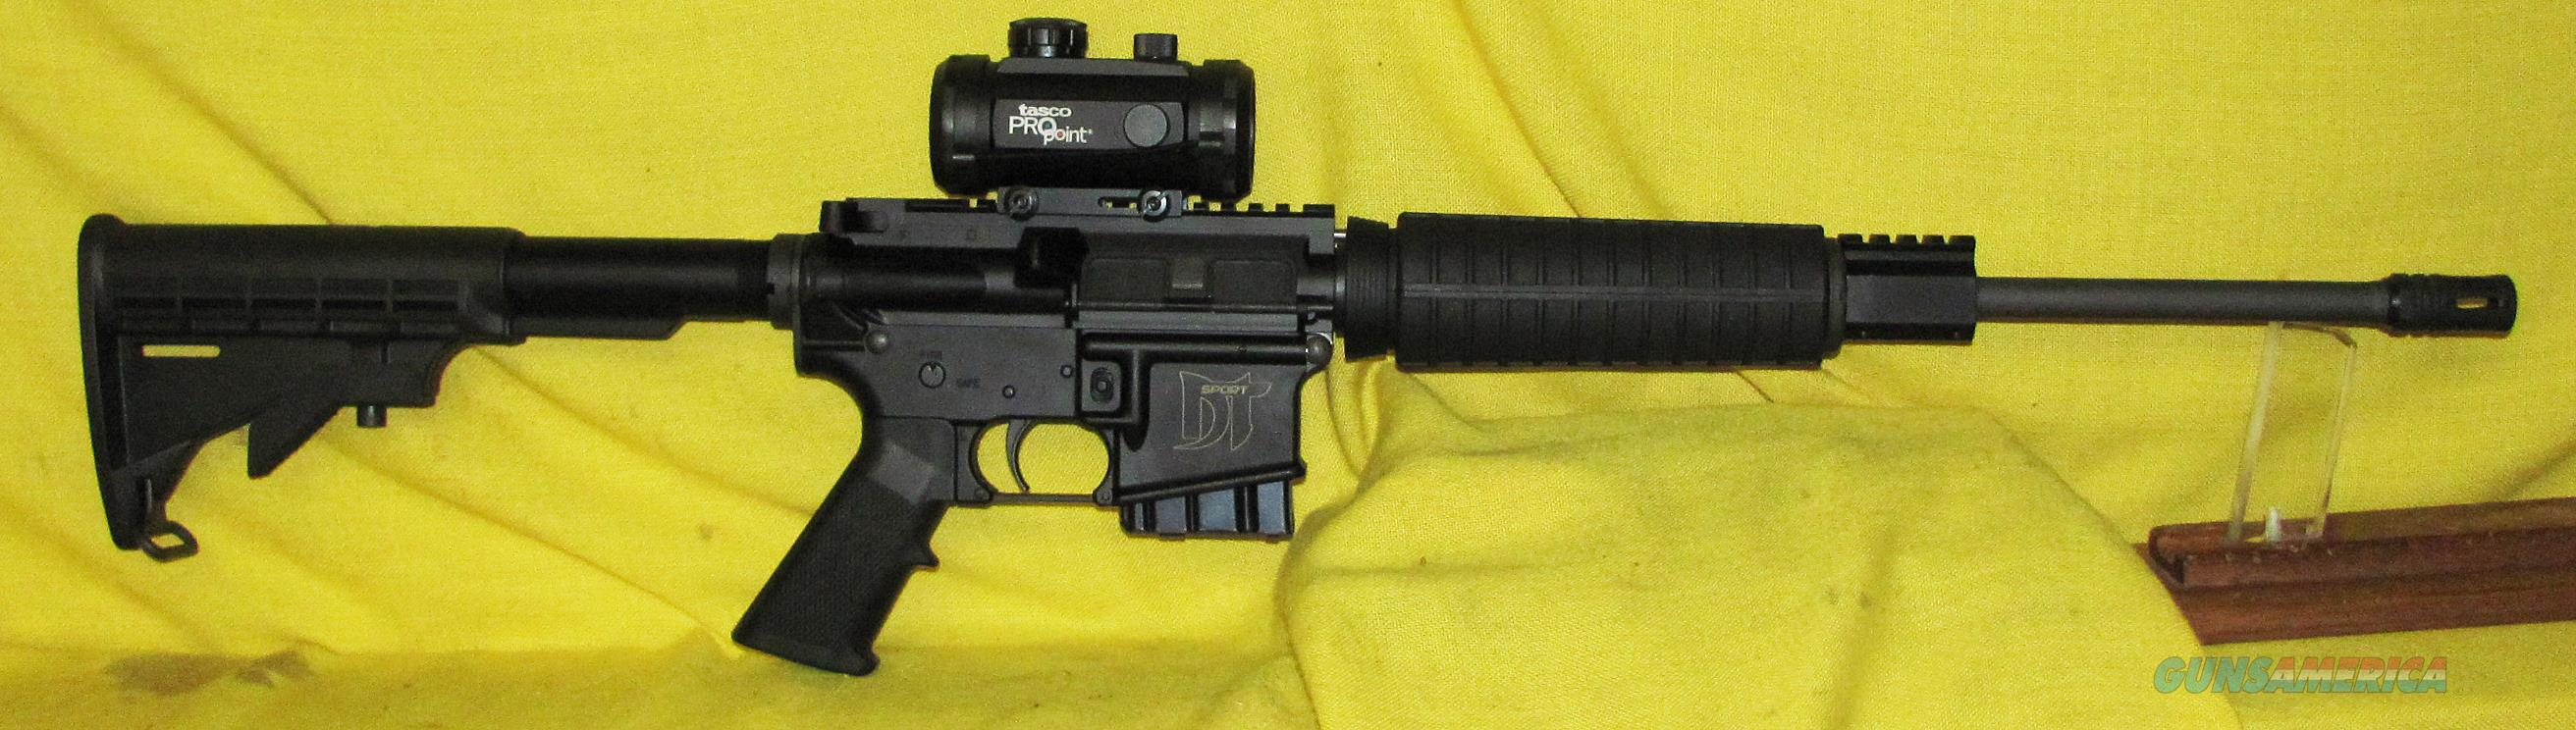 DEL-TRON DTI-15  Guns > Rifles > AR-15 Rifles - Small Manufacturers > Complete Rifle